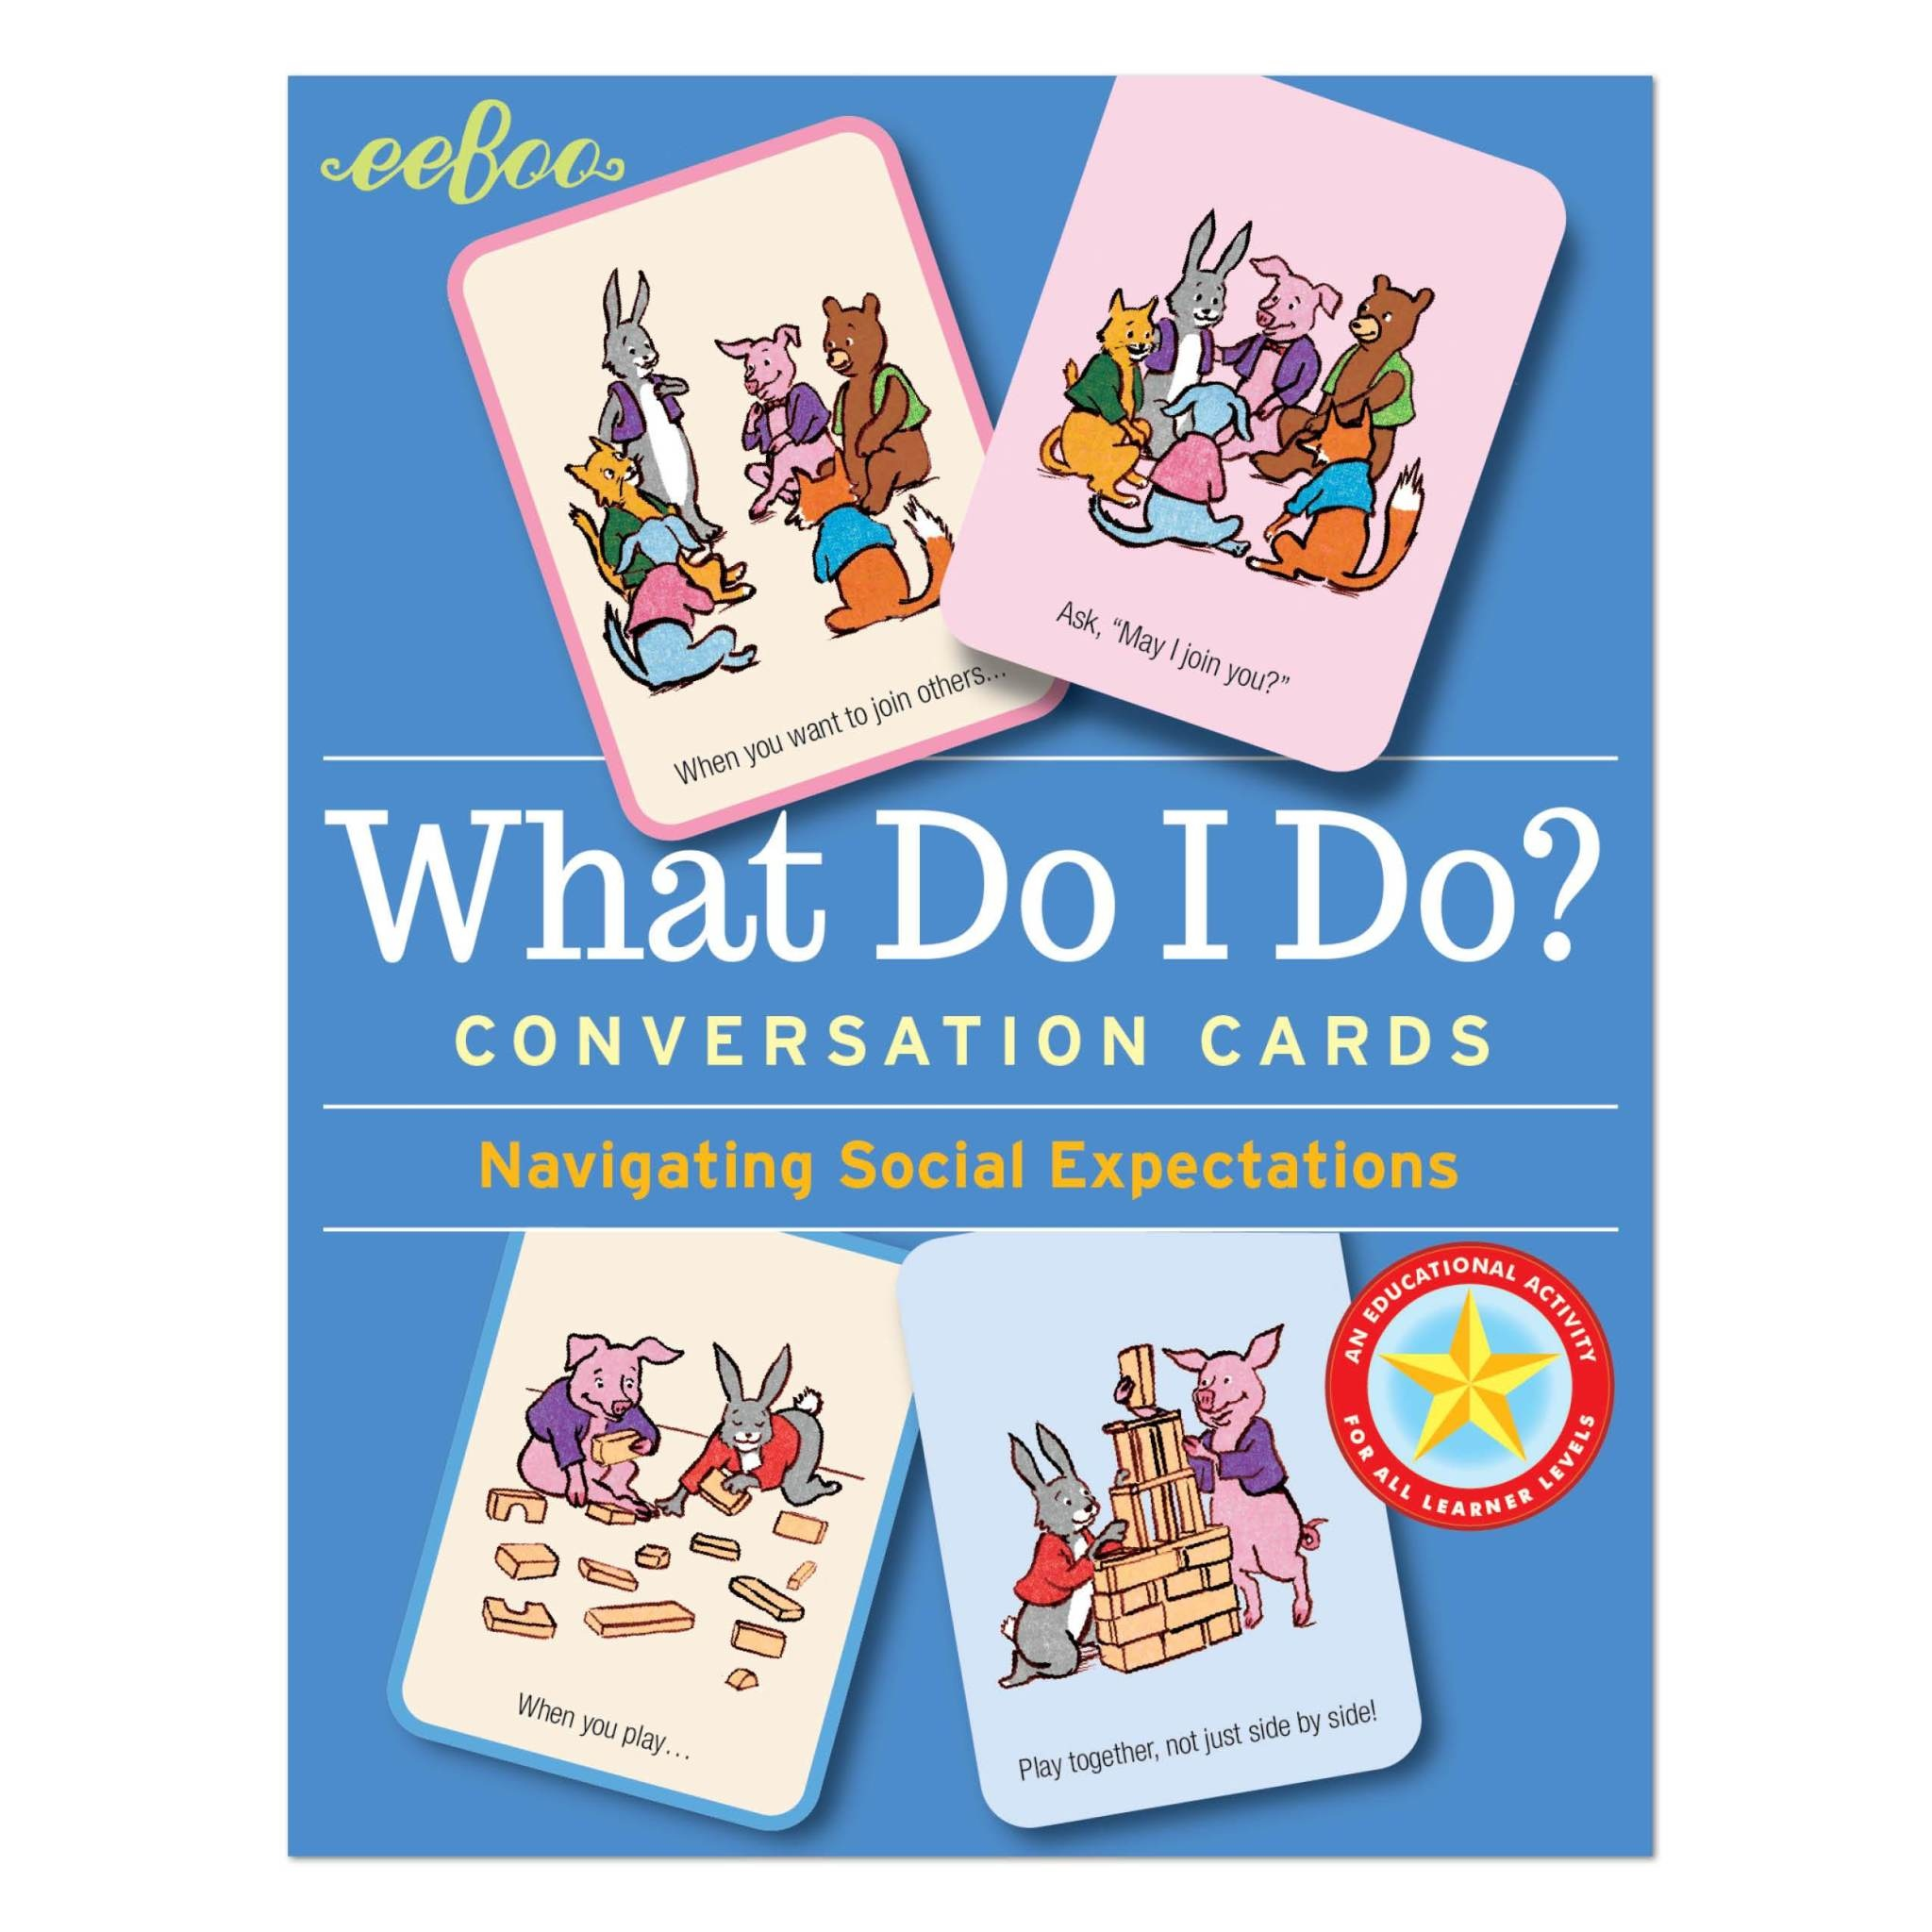 Conversation Cards: What Do I Do?